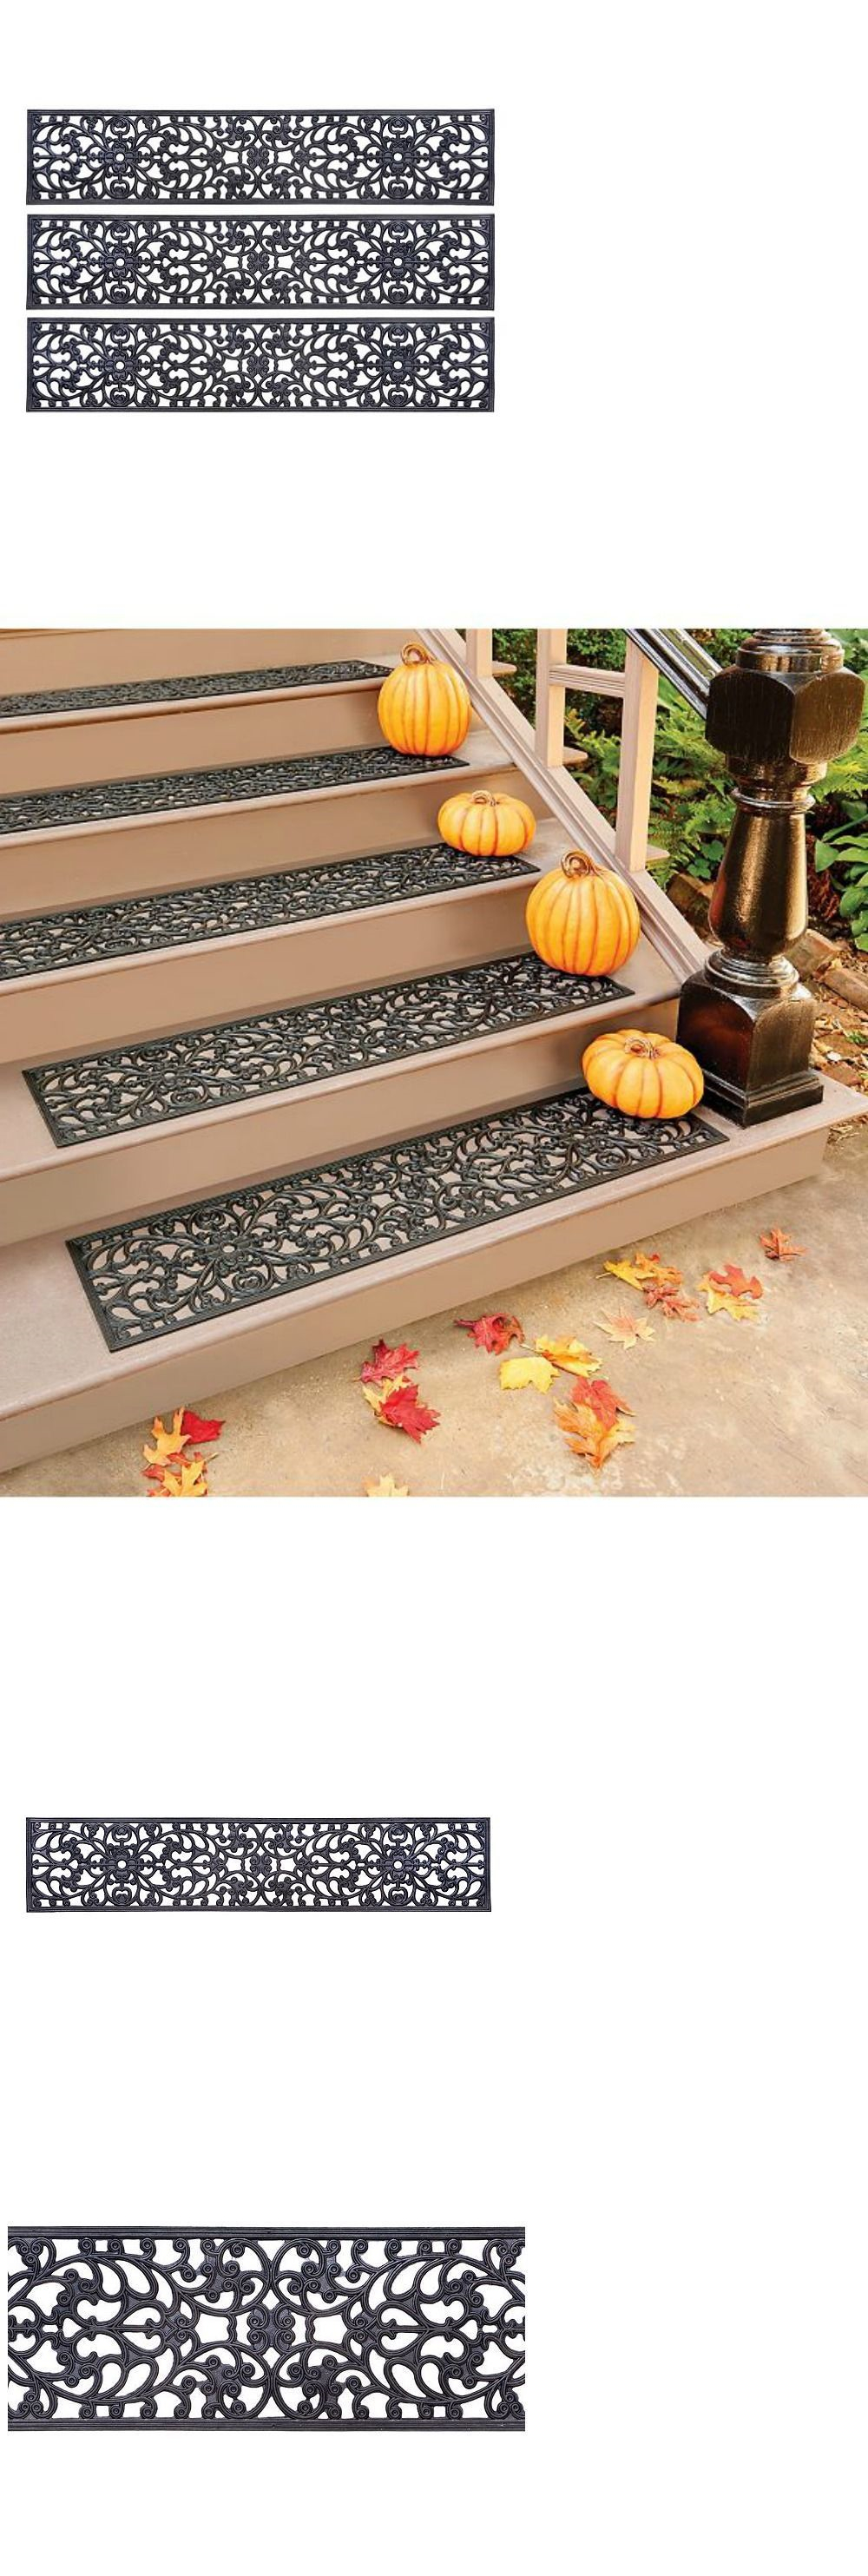 Elegant Stair Treads 175517: Decorative Rubber Stair Treads 48 Extra Wide Scroll  Design Set Of 3